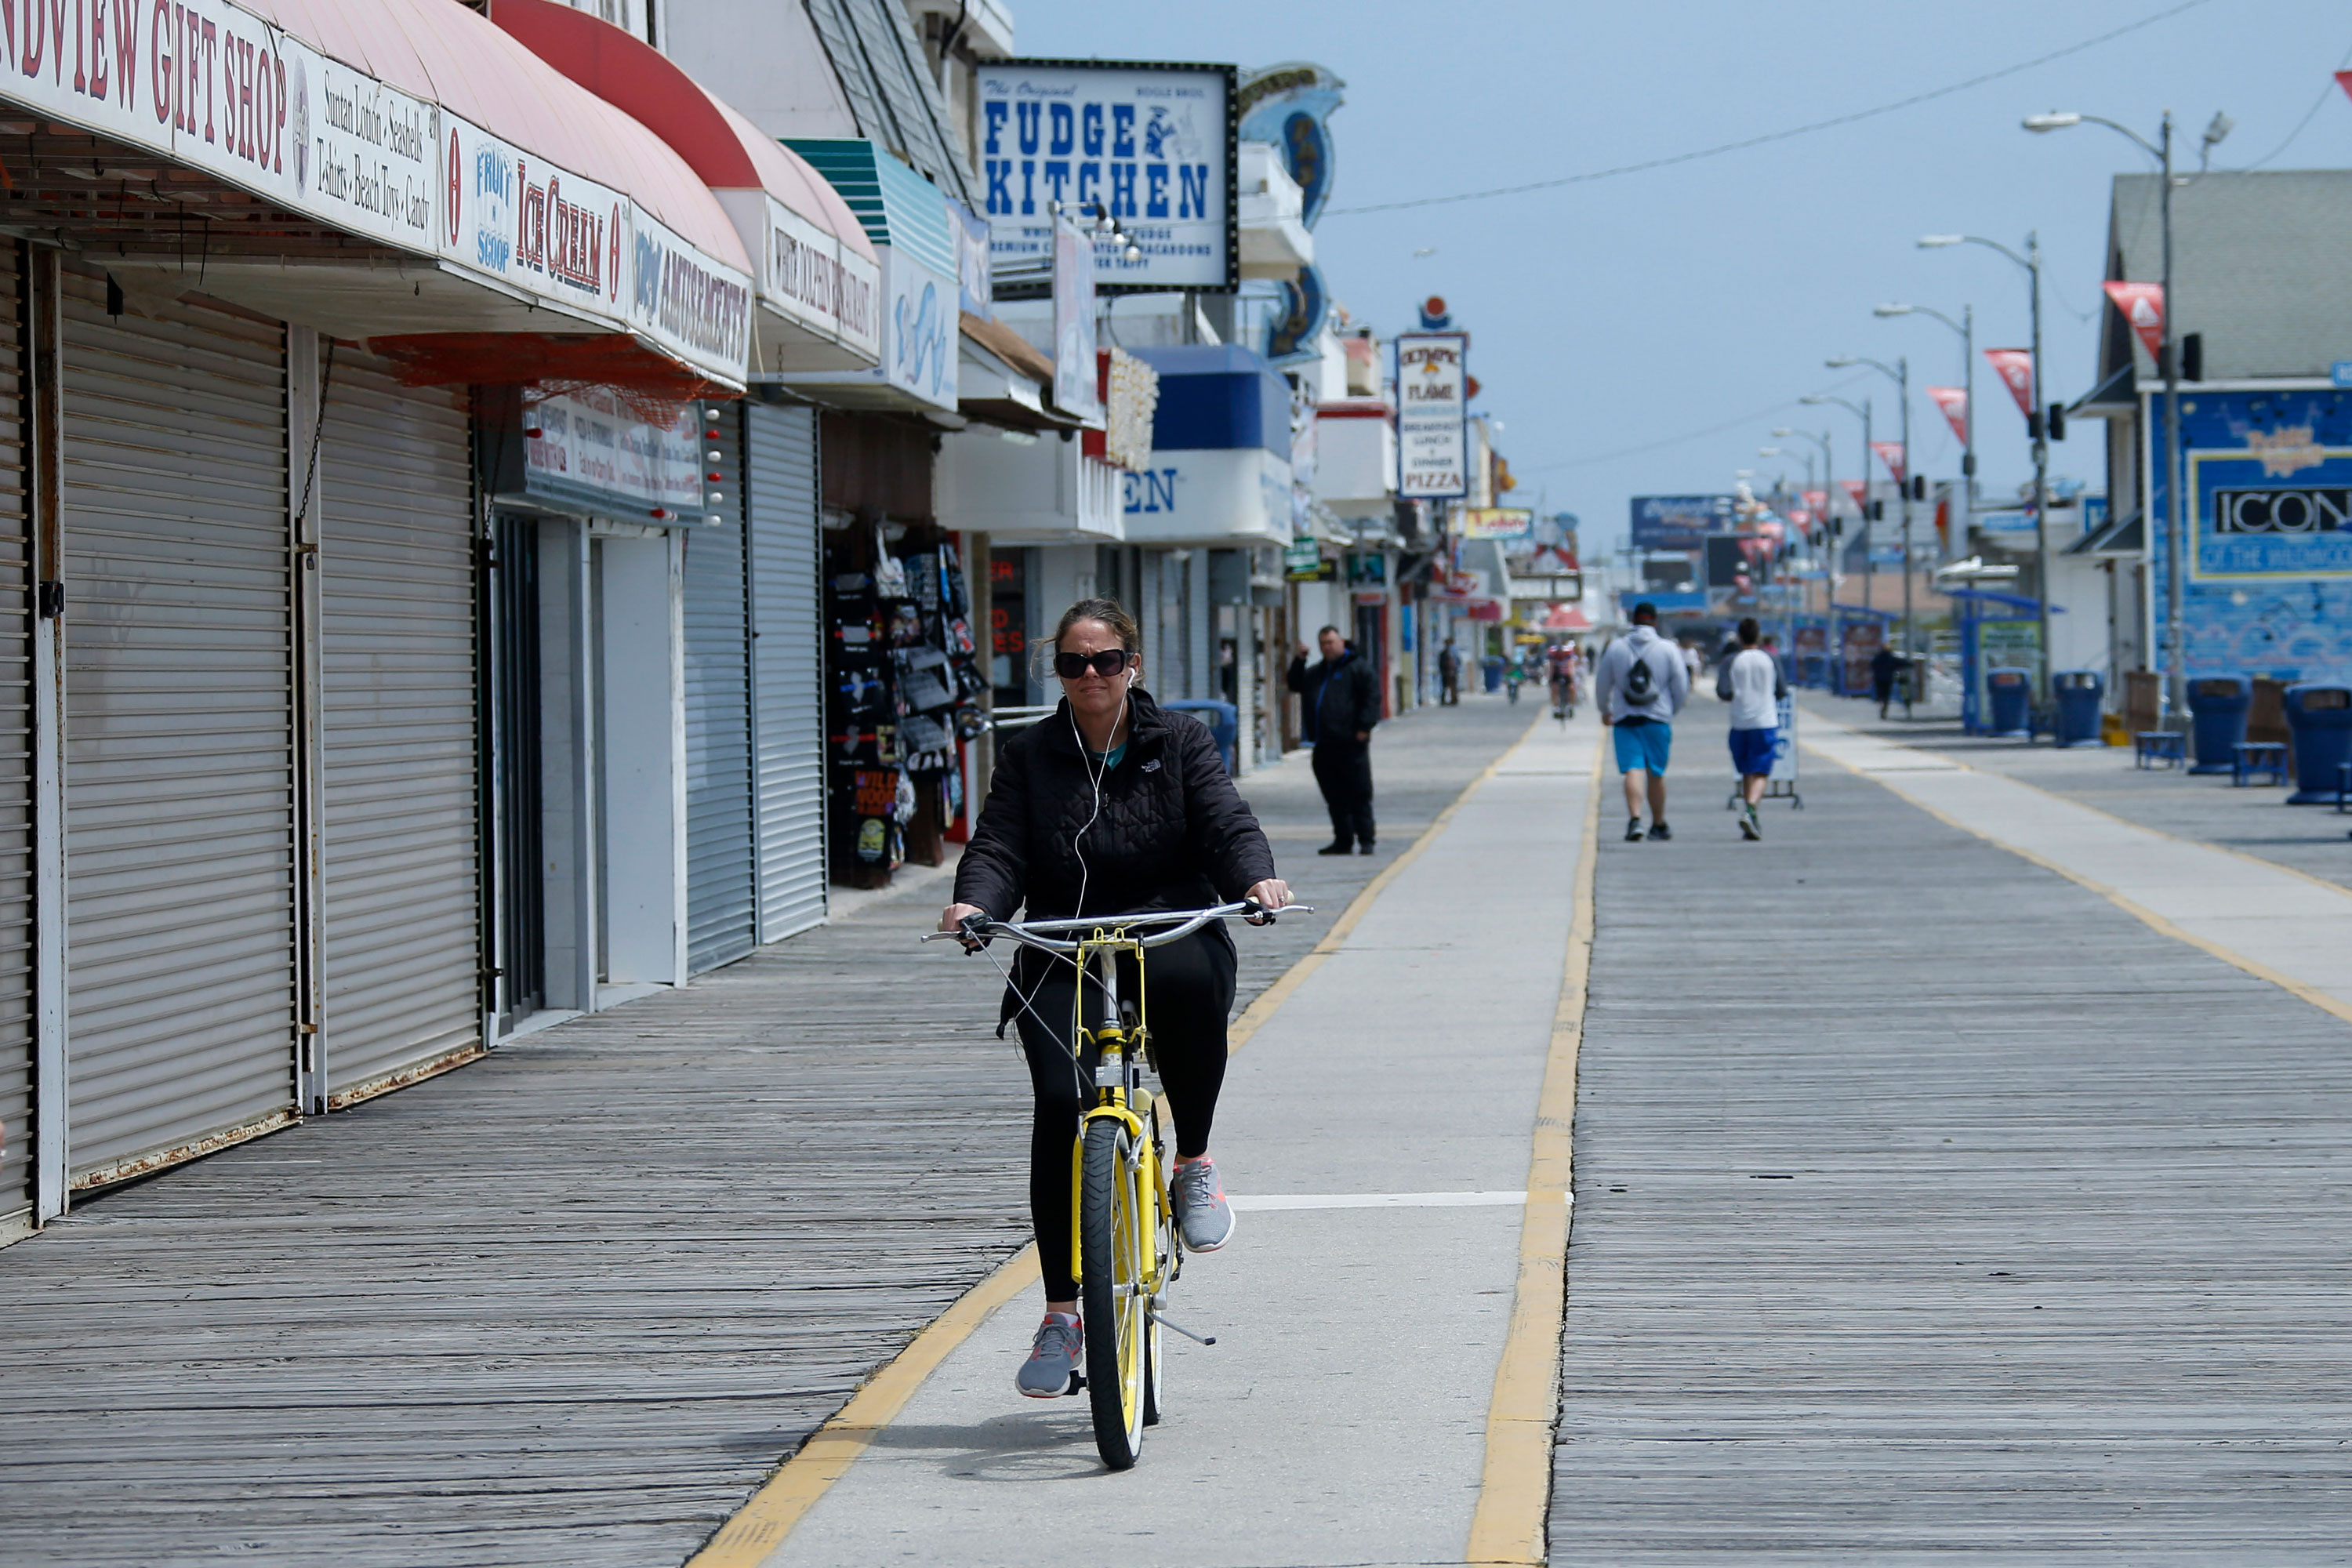 A woman rides a bike down the boardwalk on May 21 in Wildwood, New Jersey.